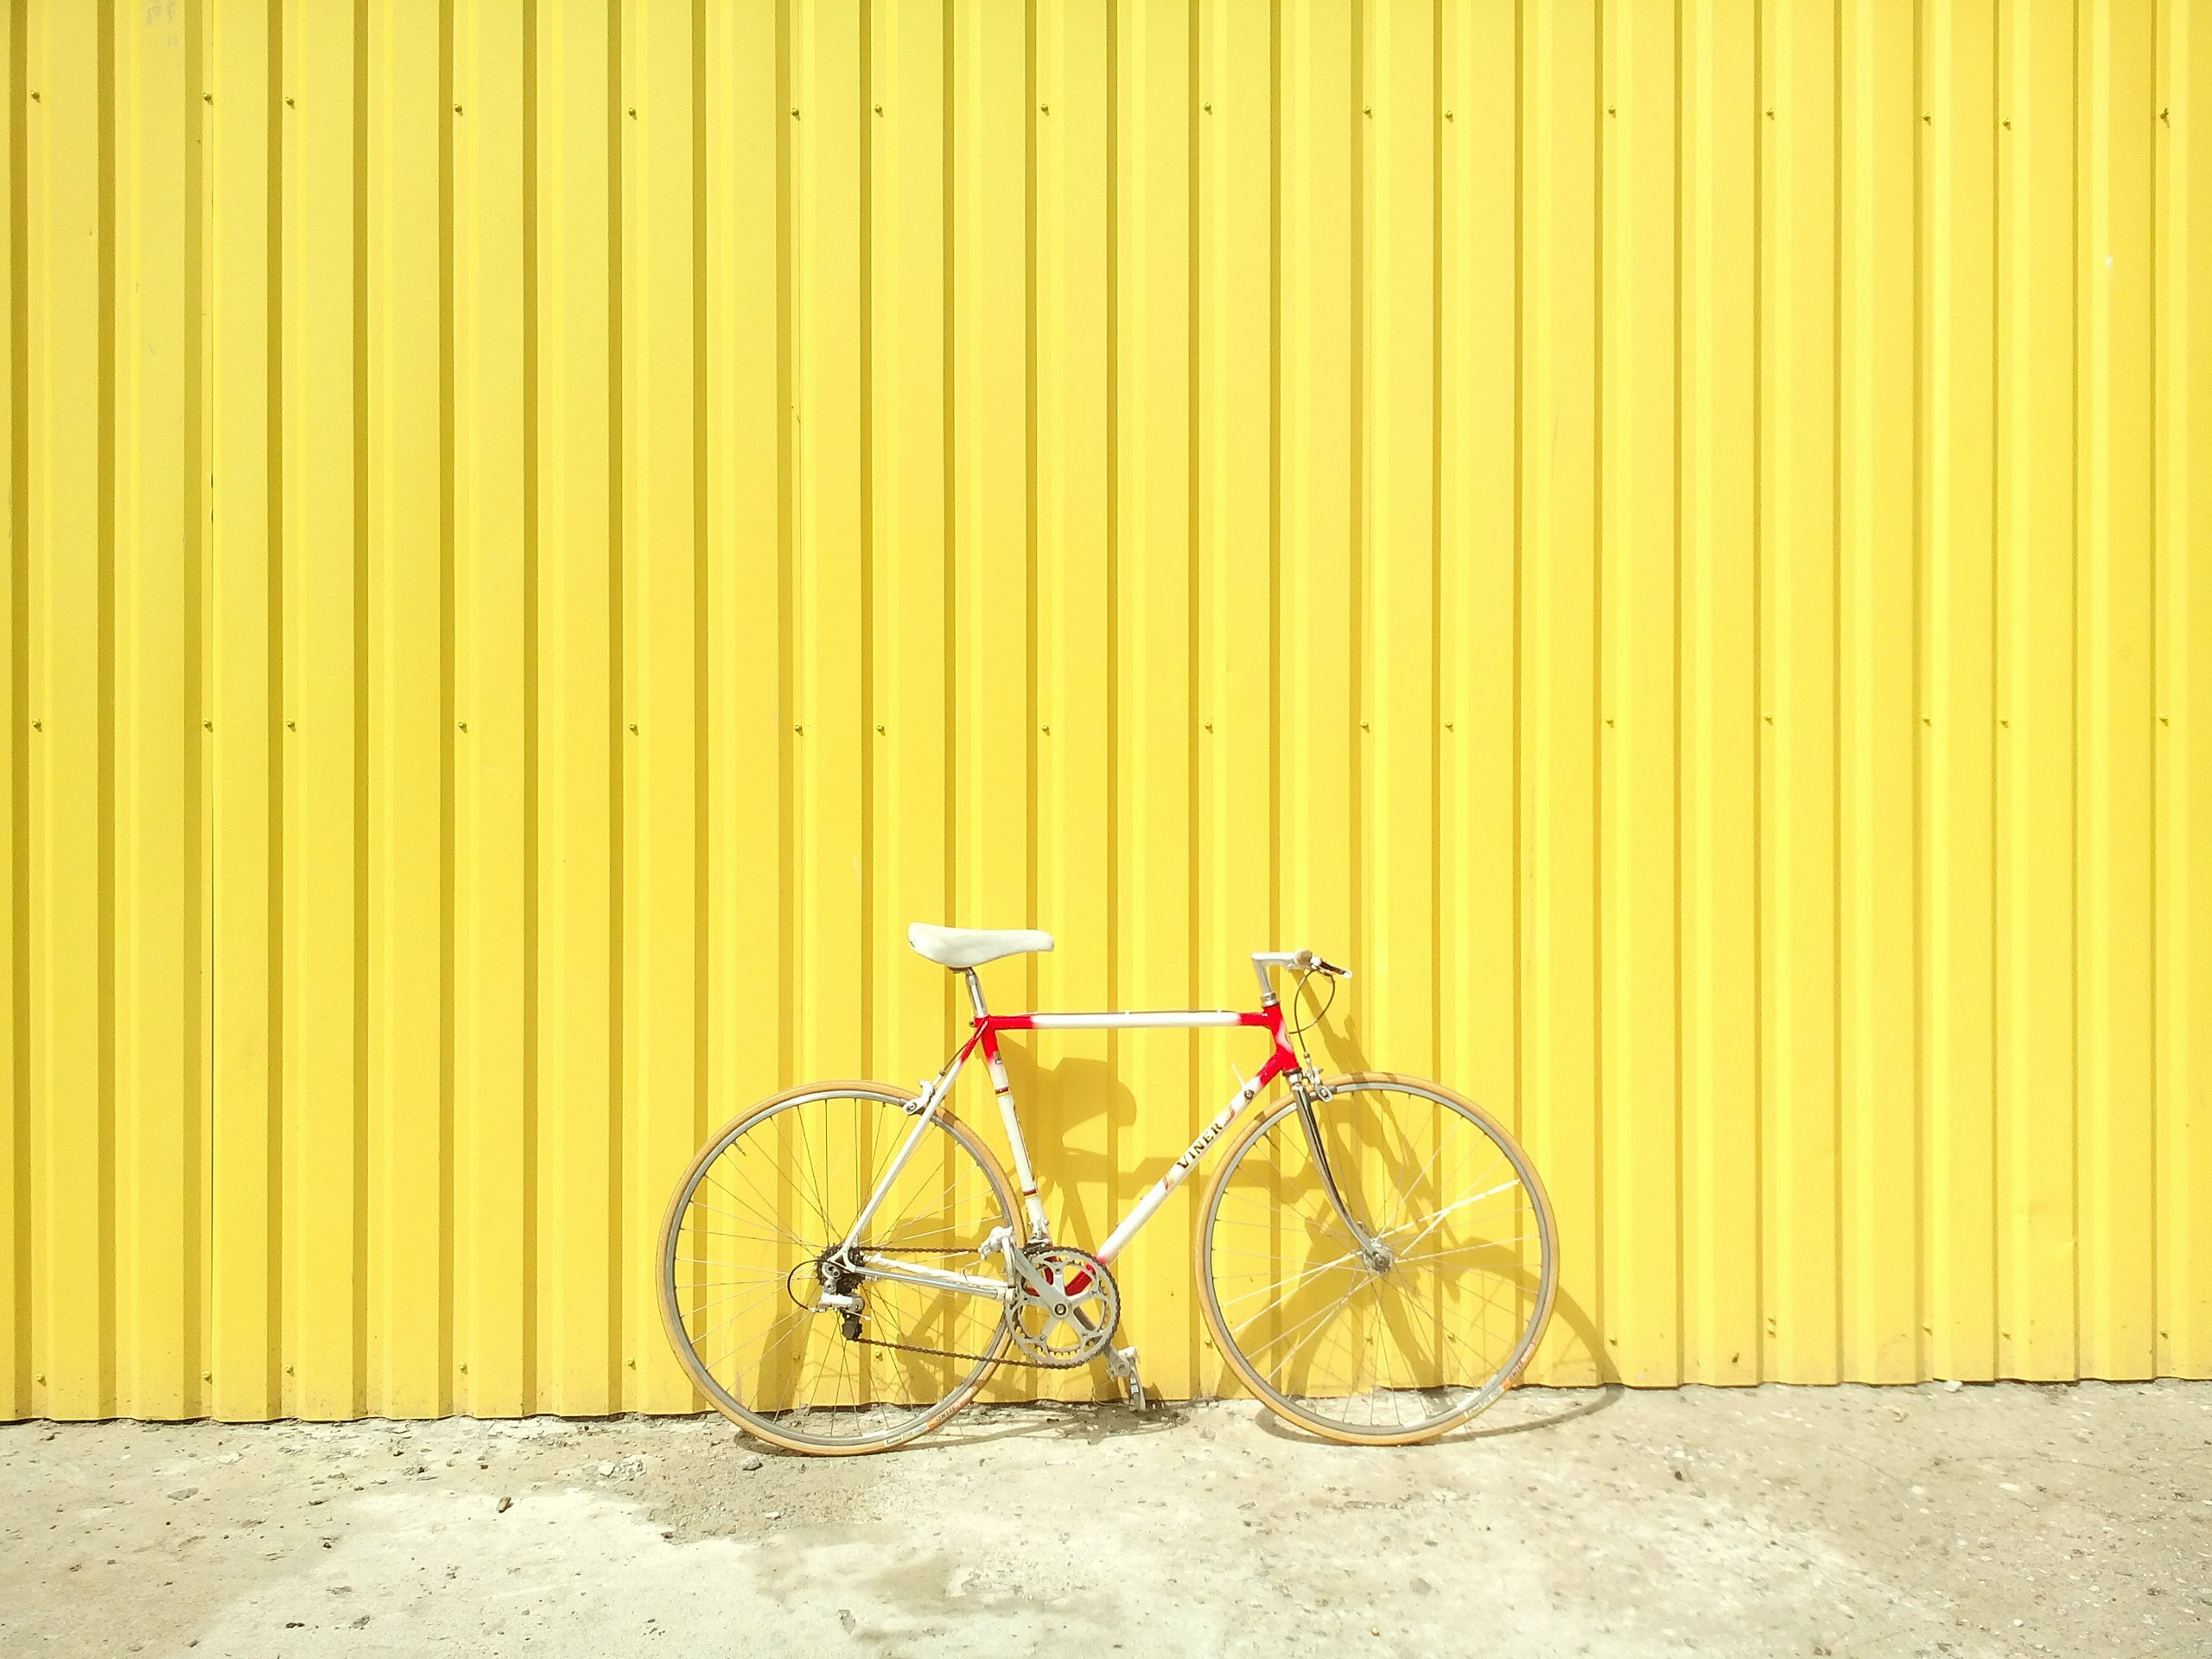 A vintage bicycle leaned against bright yellow wall